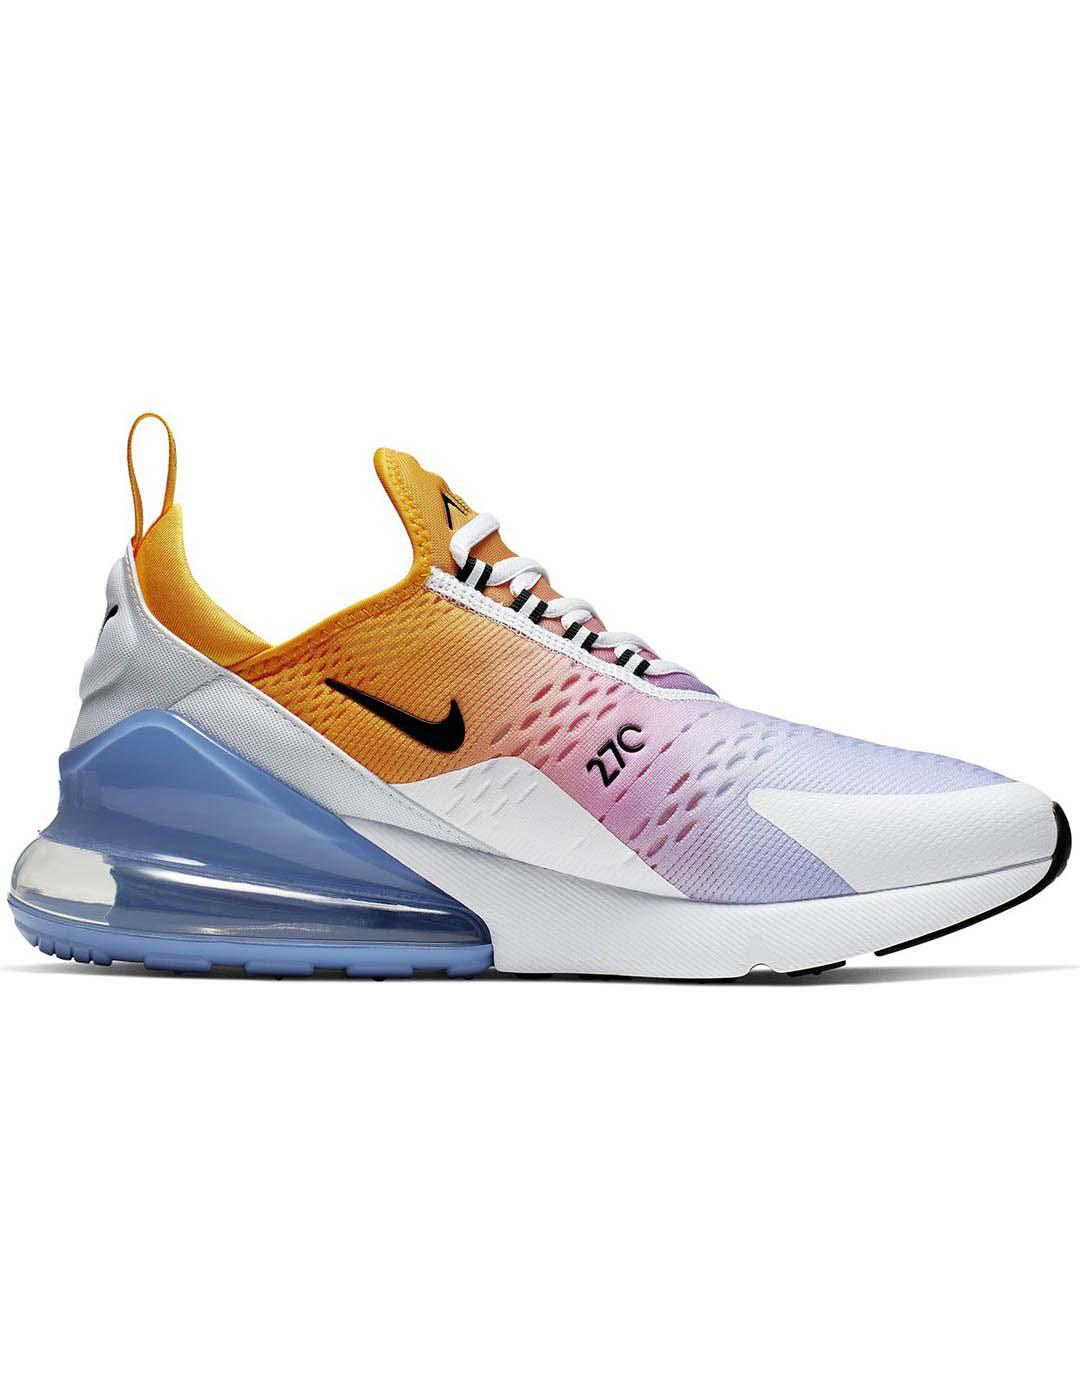 Zapatillas Nike Nike Air Max 270 University GoldB 40 000